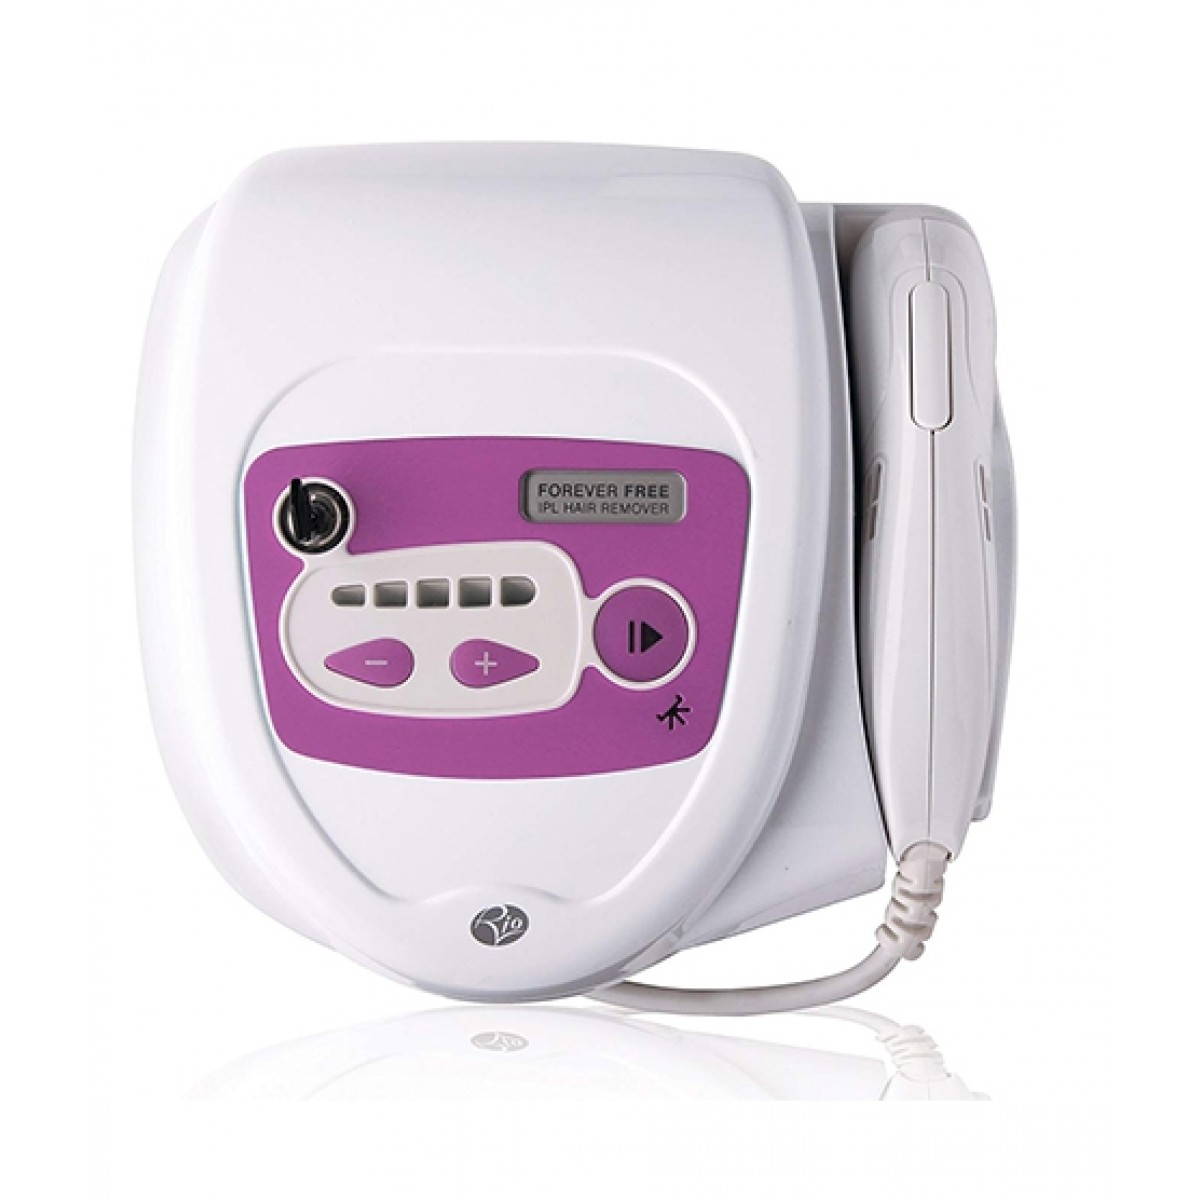 Rio Forever Free Ipl Hair Remover System Price In Pakistan Buy Rio Ipl Intense Pulsed Light Hair Removal System Ishopping Pk